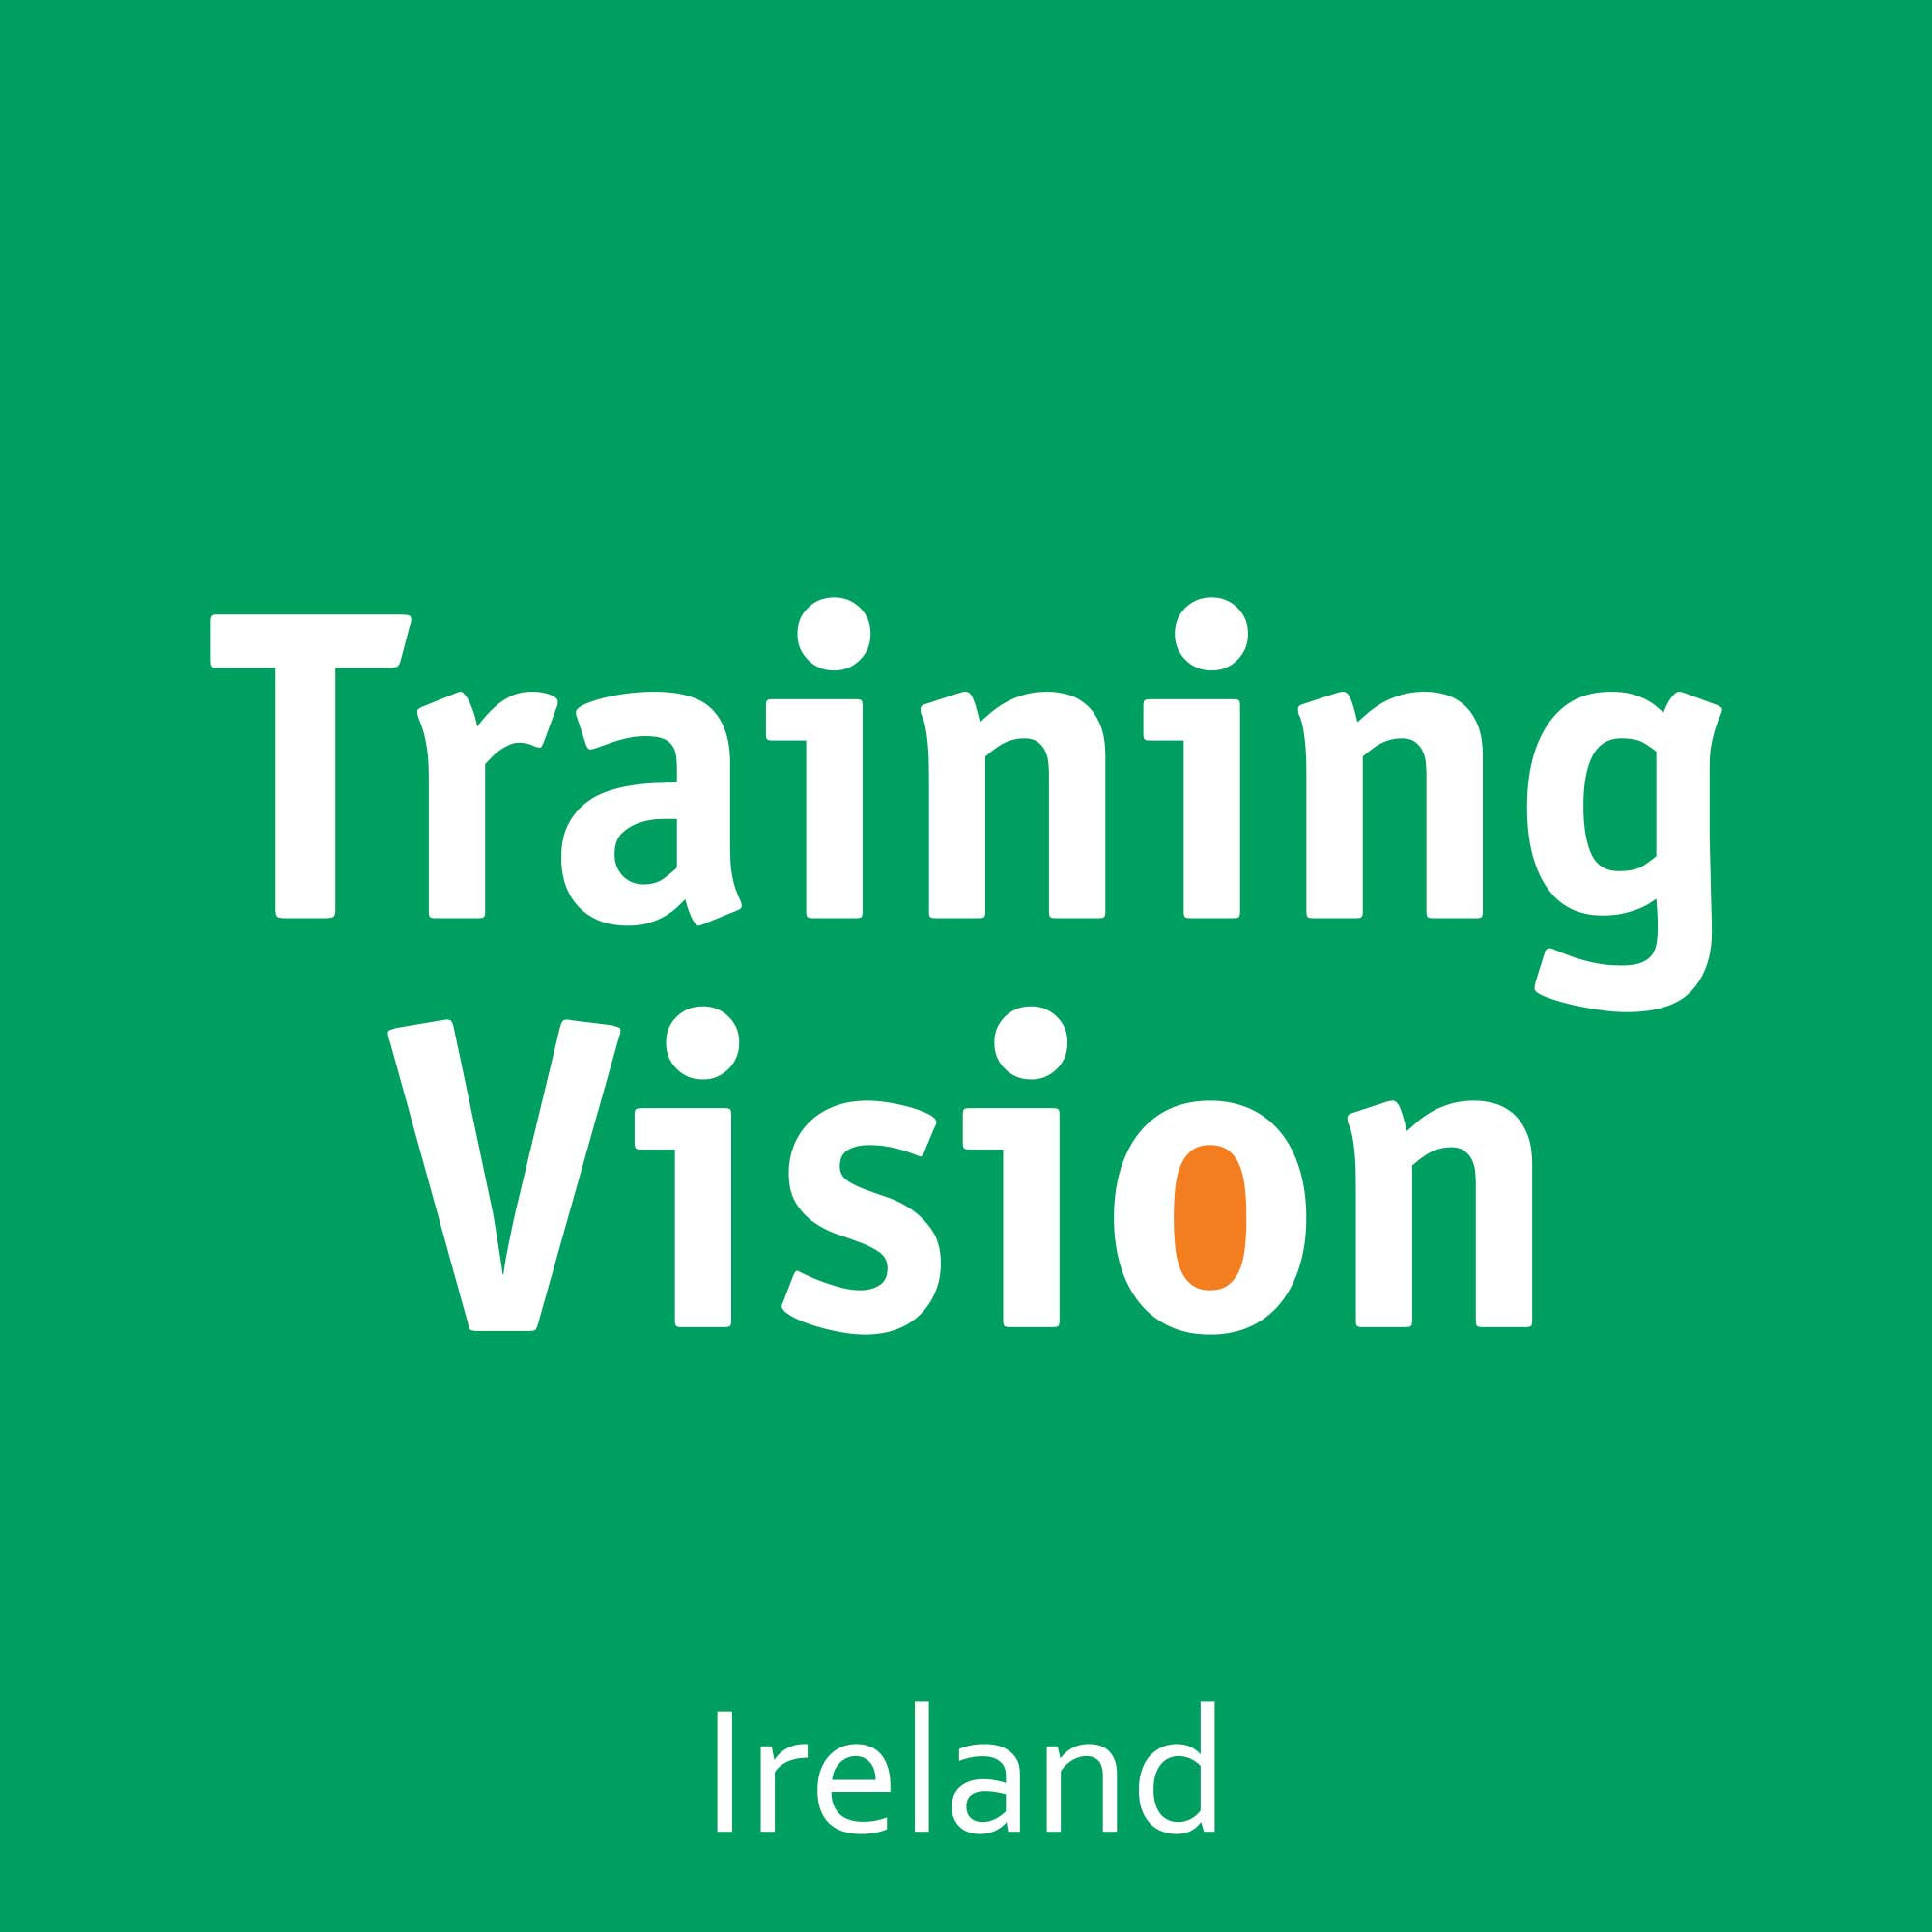 training vision ireland